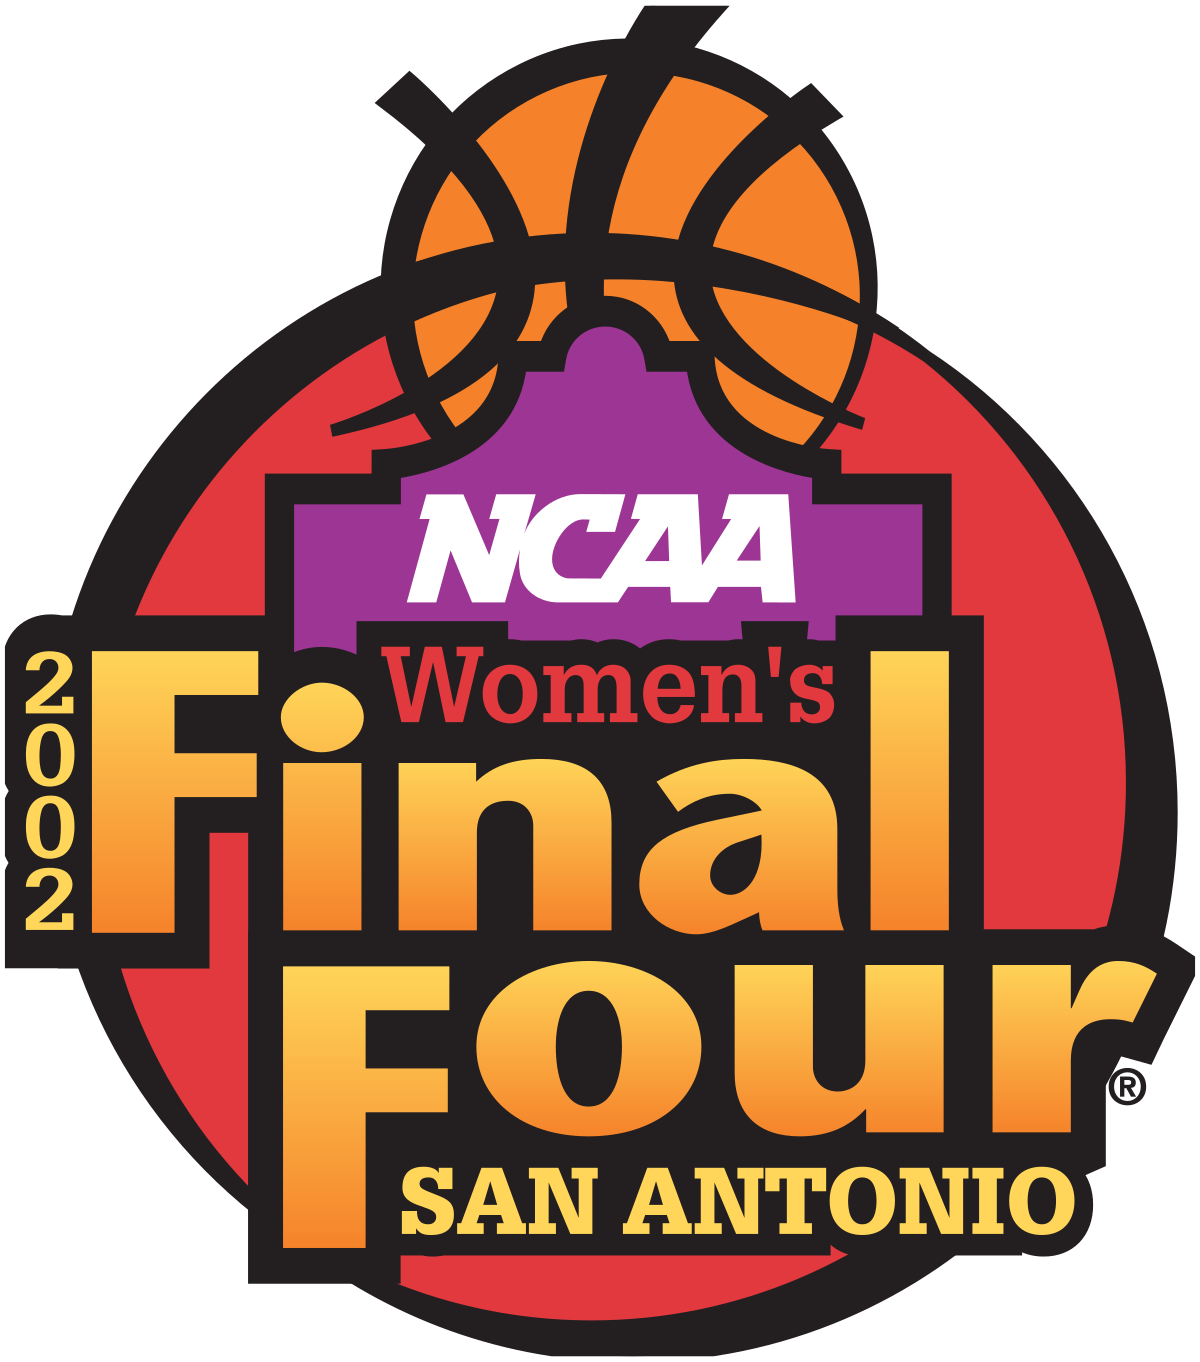 Foul shots basketball clipart clipart transparent library 2002 NCAA Division I Women's Basketball Tournament - Wikipedia clipart transparent library